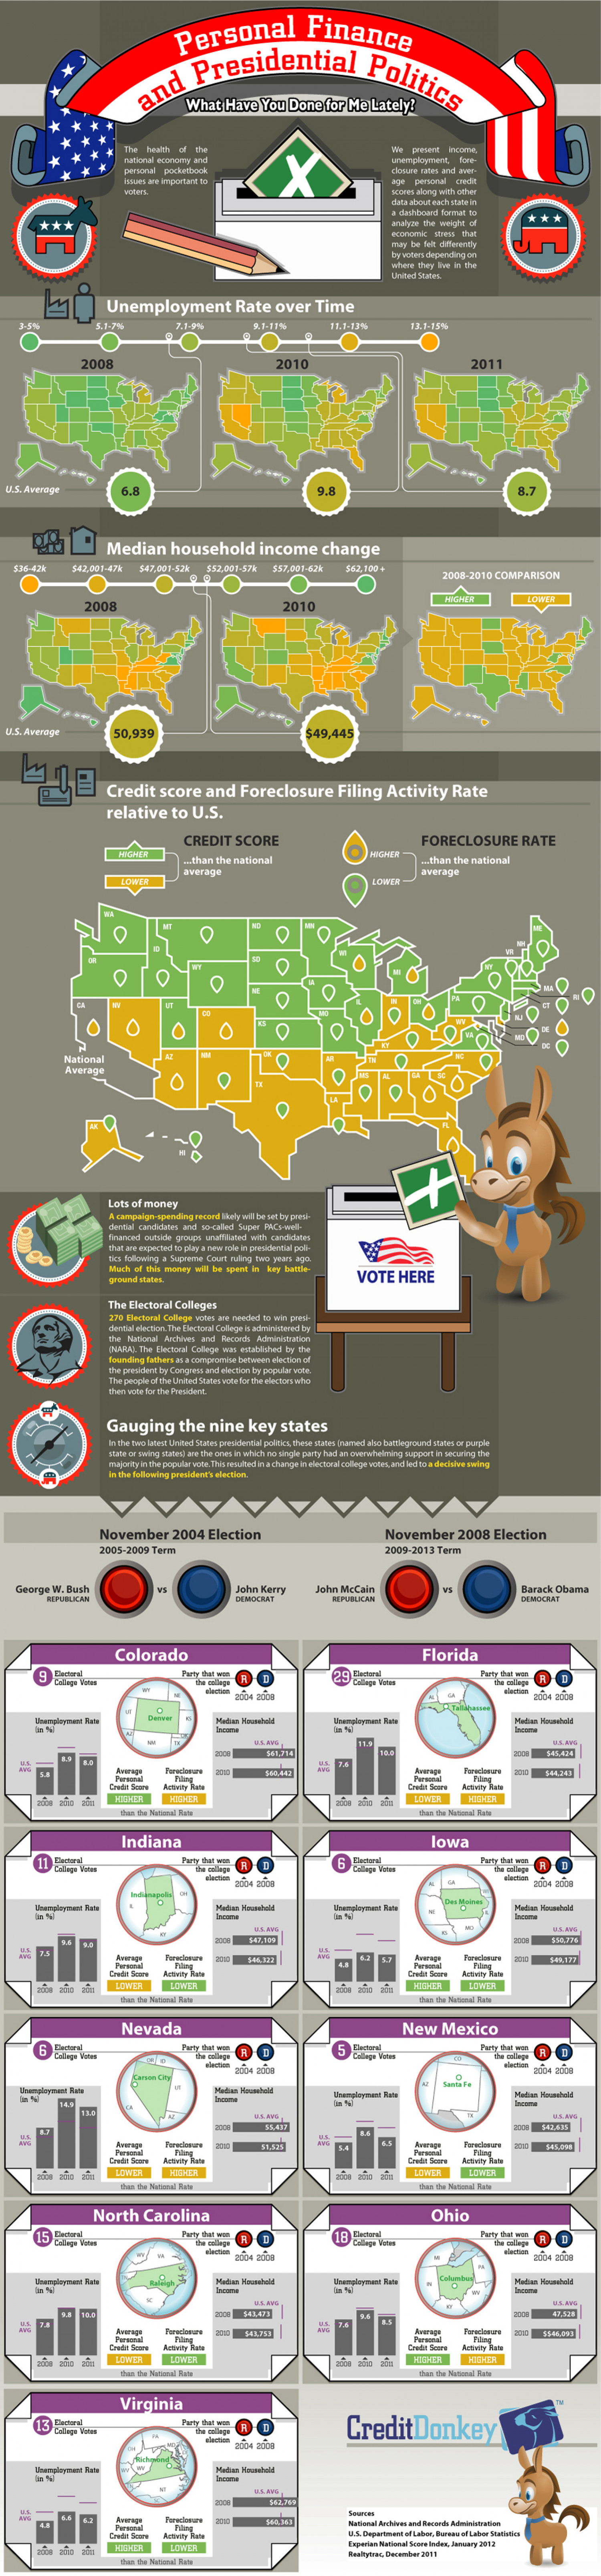 Pocketbook Issues and Presidential Politics Infographic